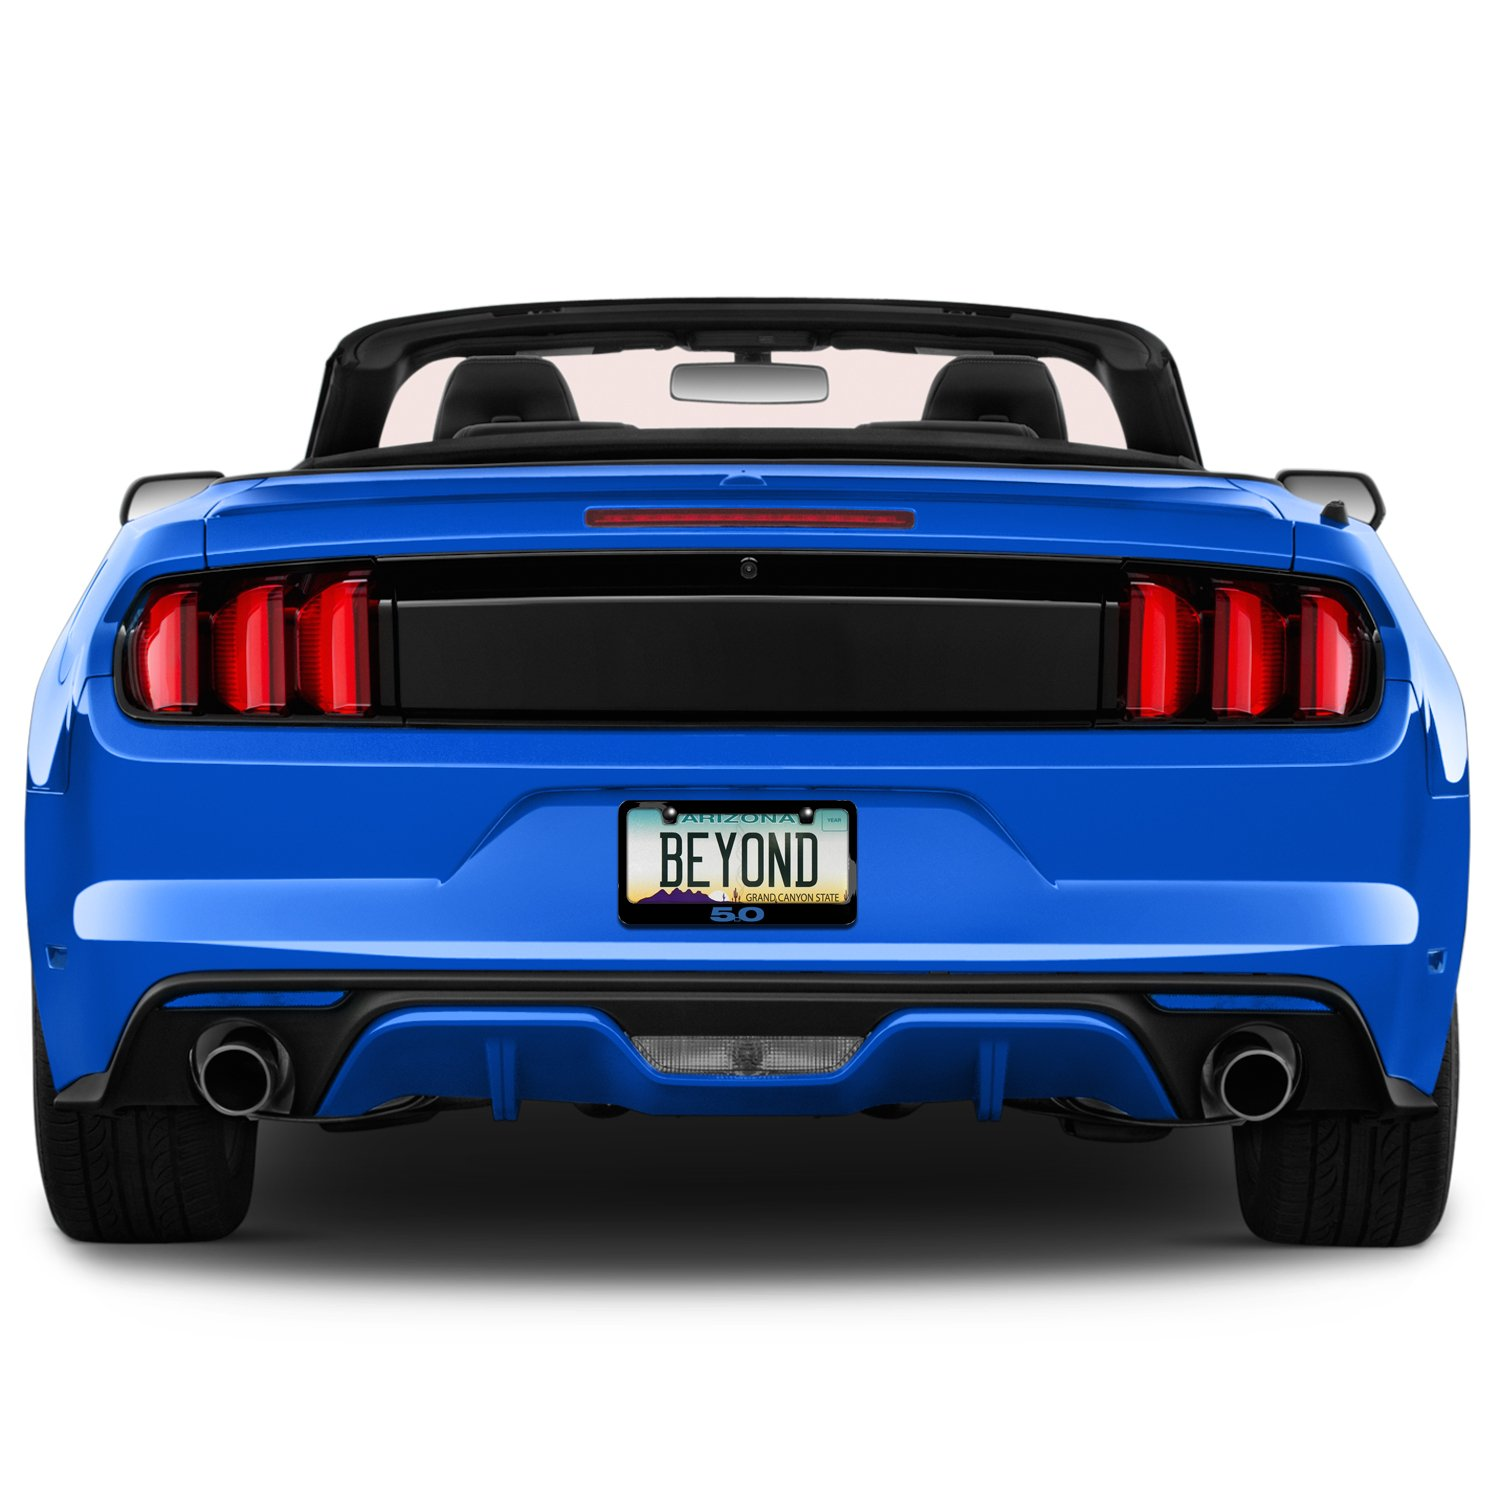 Ford Mustang 5.0 in Blue Black Metal License Plate Frame iPick Image